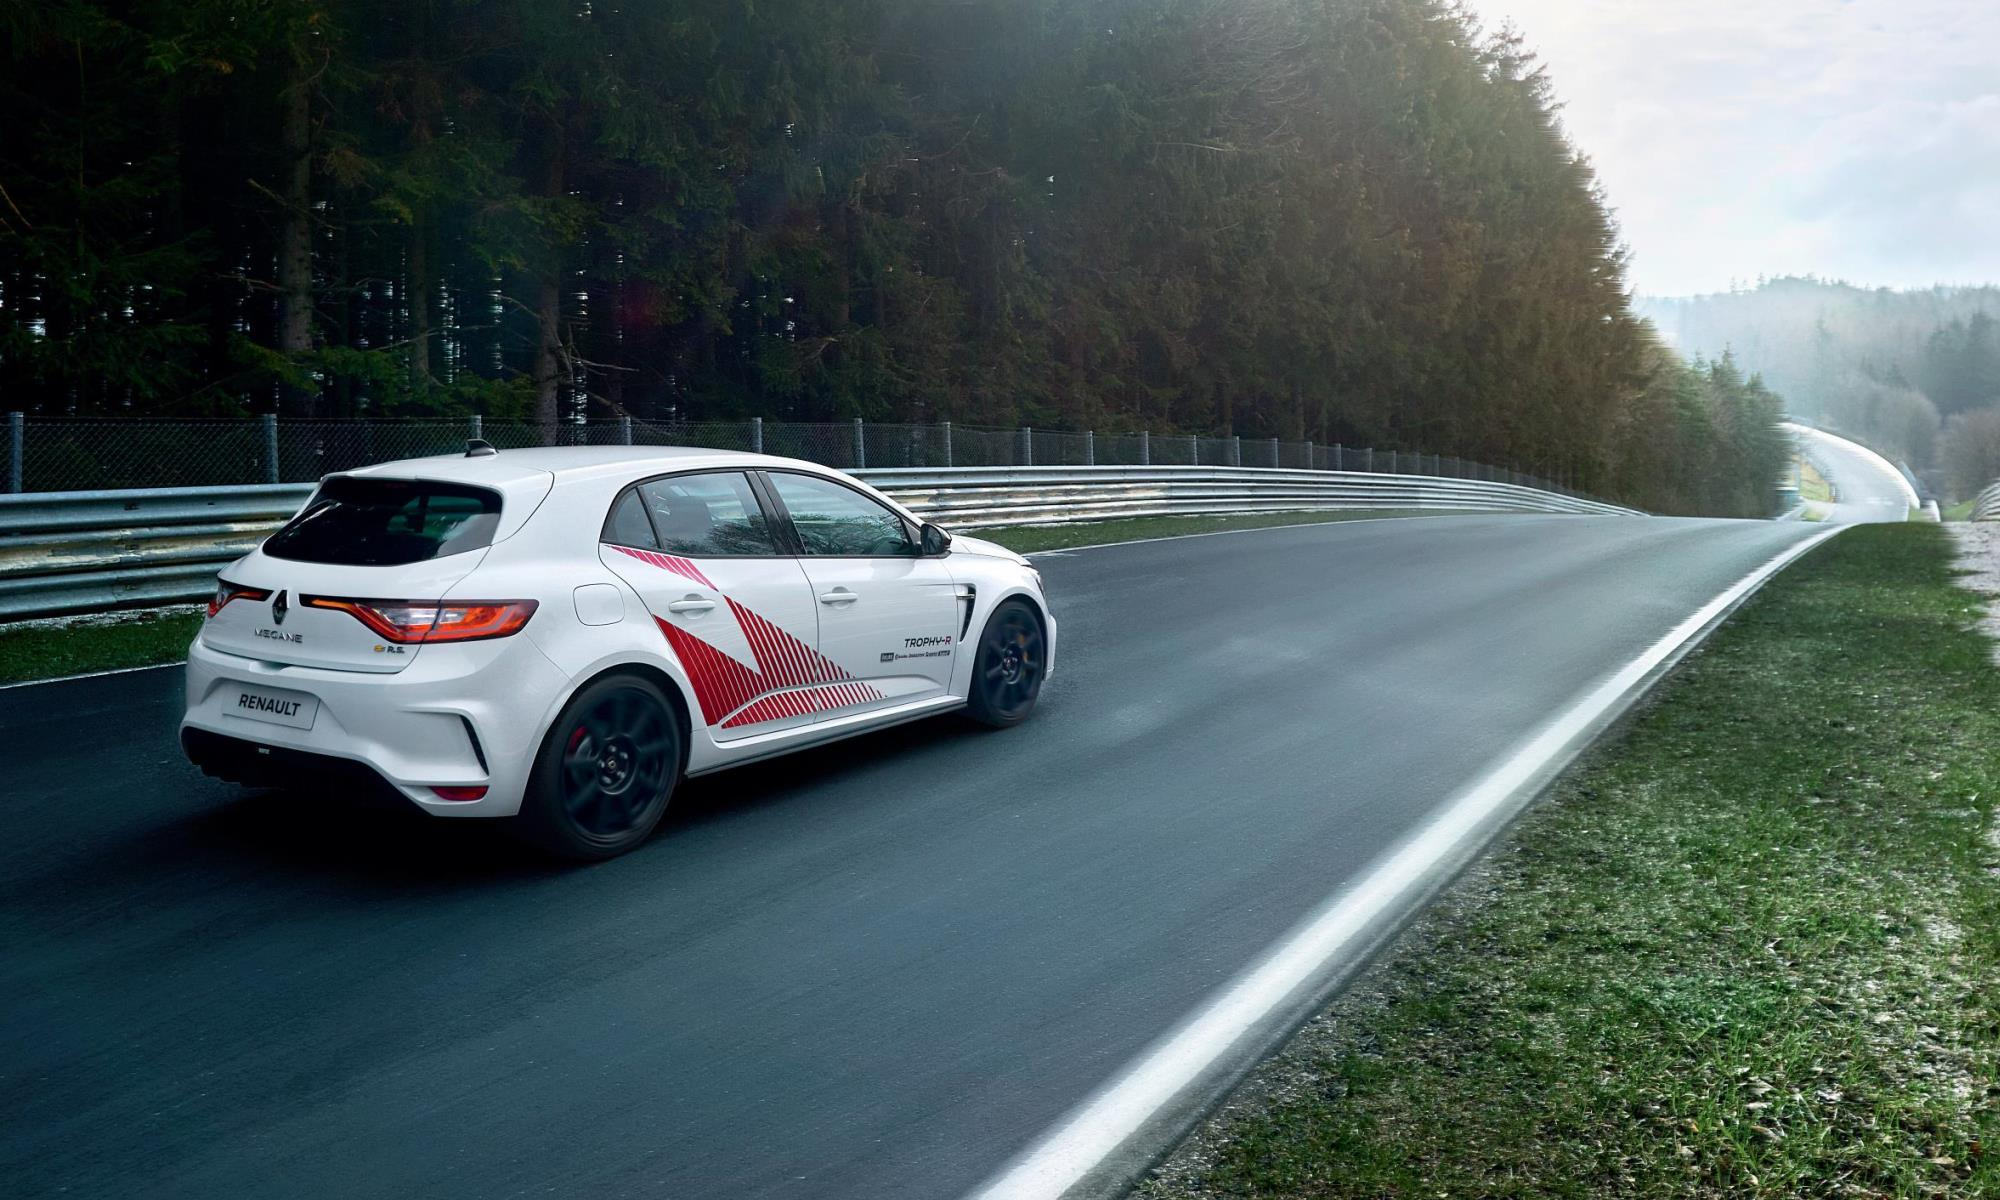 Megane Trophy-R Nurburgring Record rear